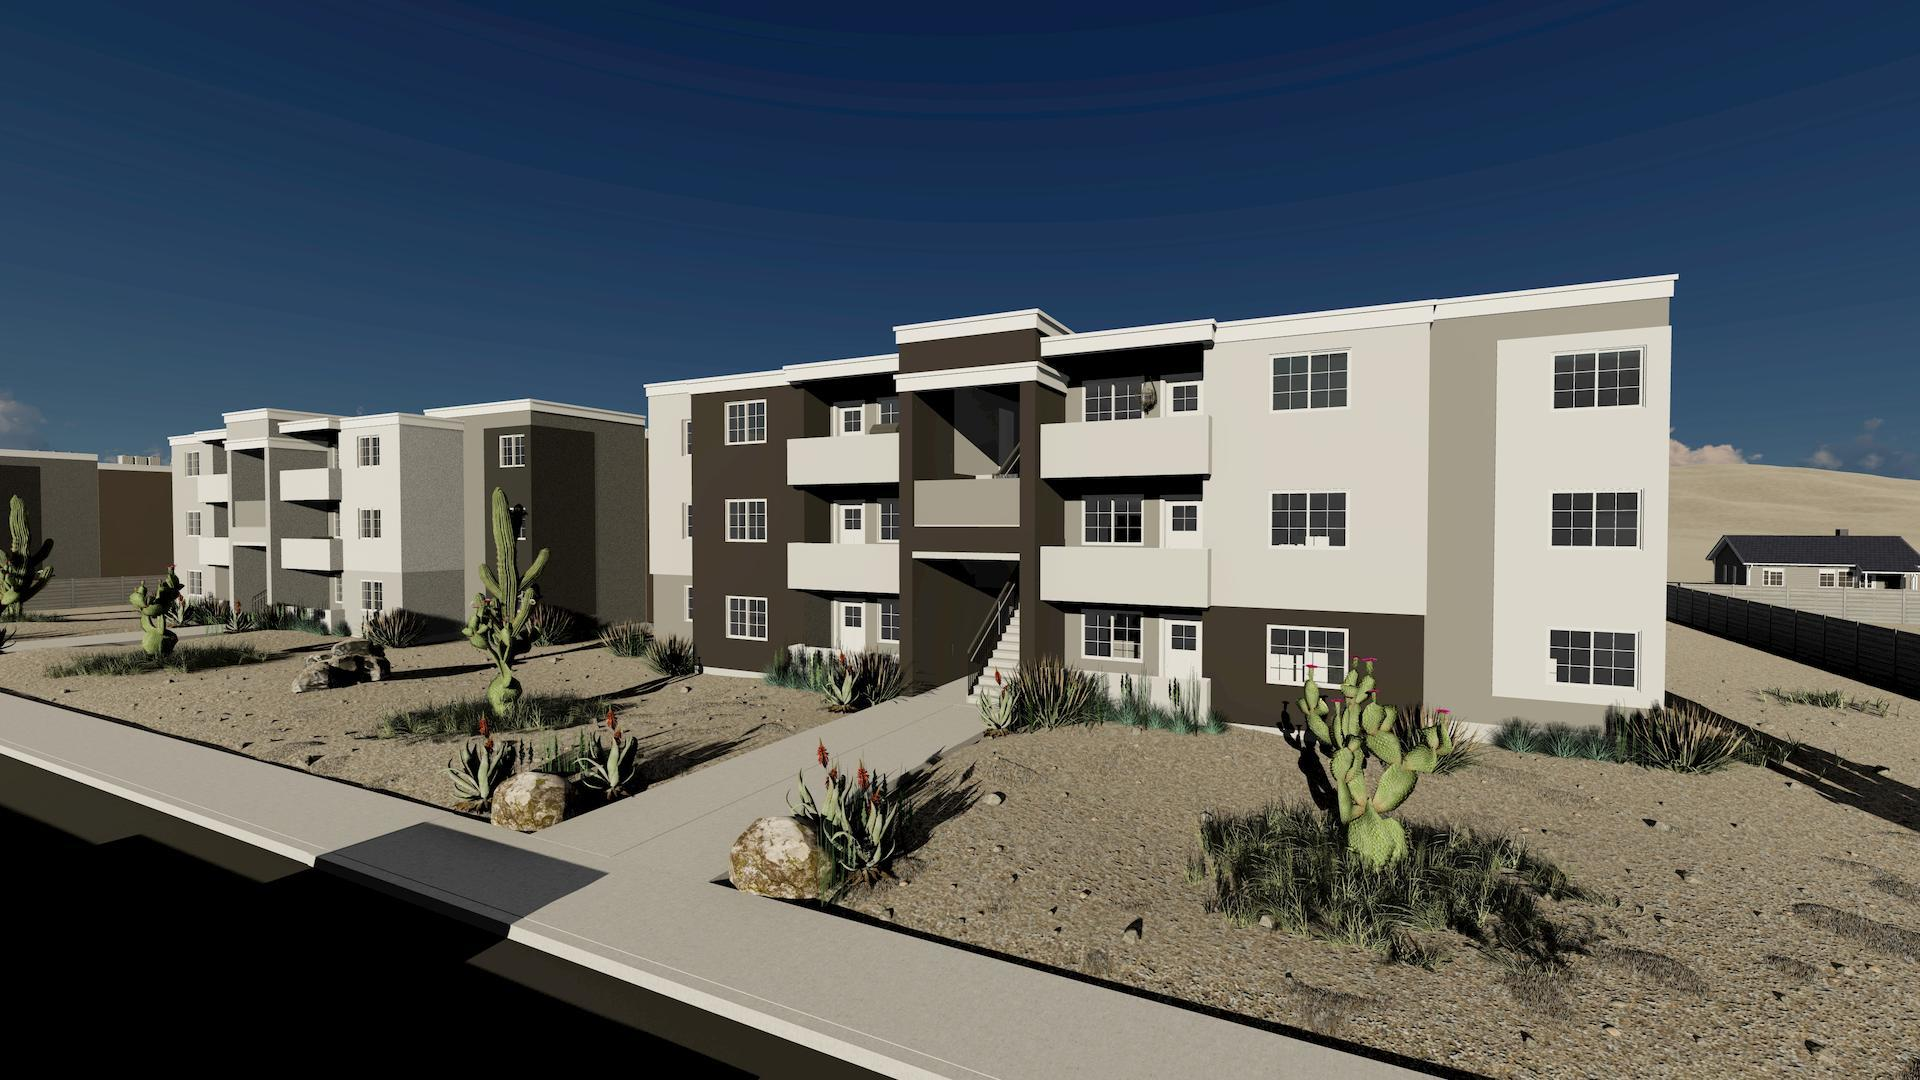 What the village on greenway multifamily investment will look like